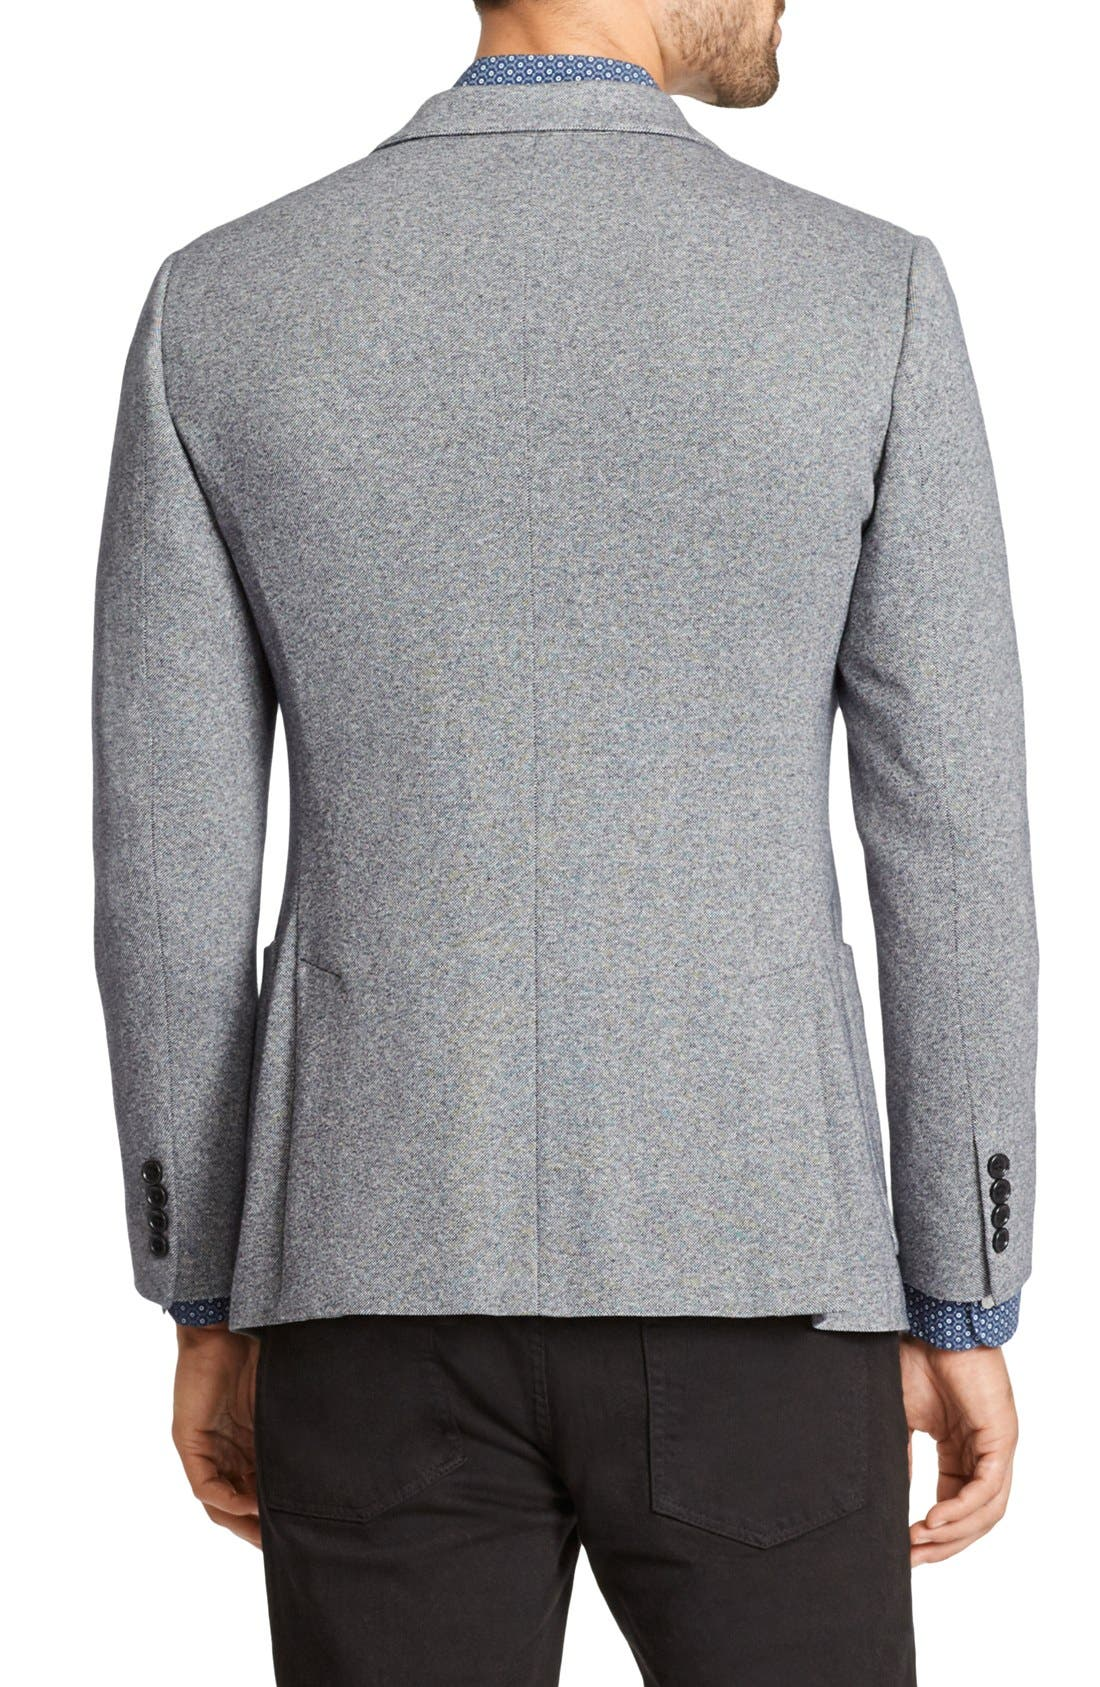 Jetsetter Trim Fit Knit Cotton Sport Coat,                             Alternate thumbnail 7, color,                             LIGHT GREY